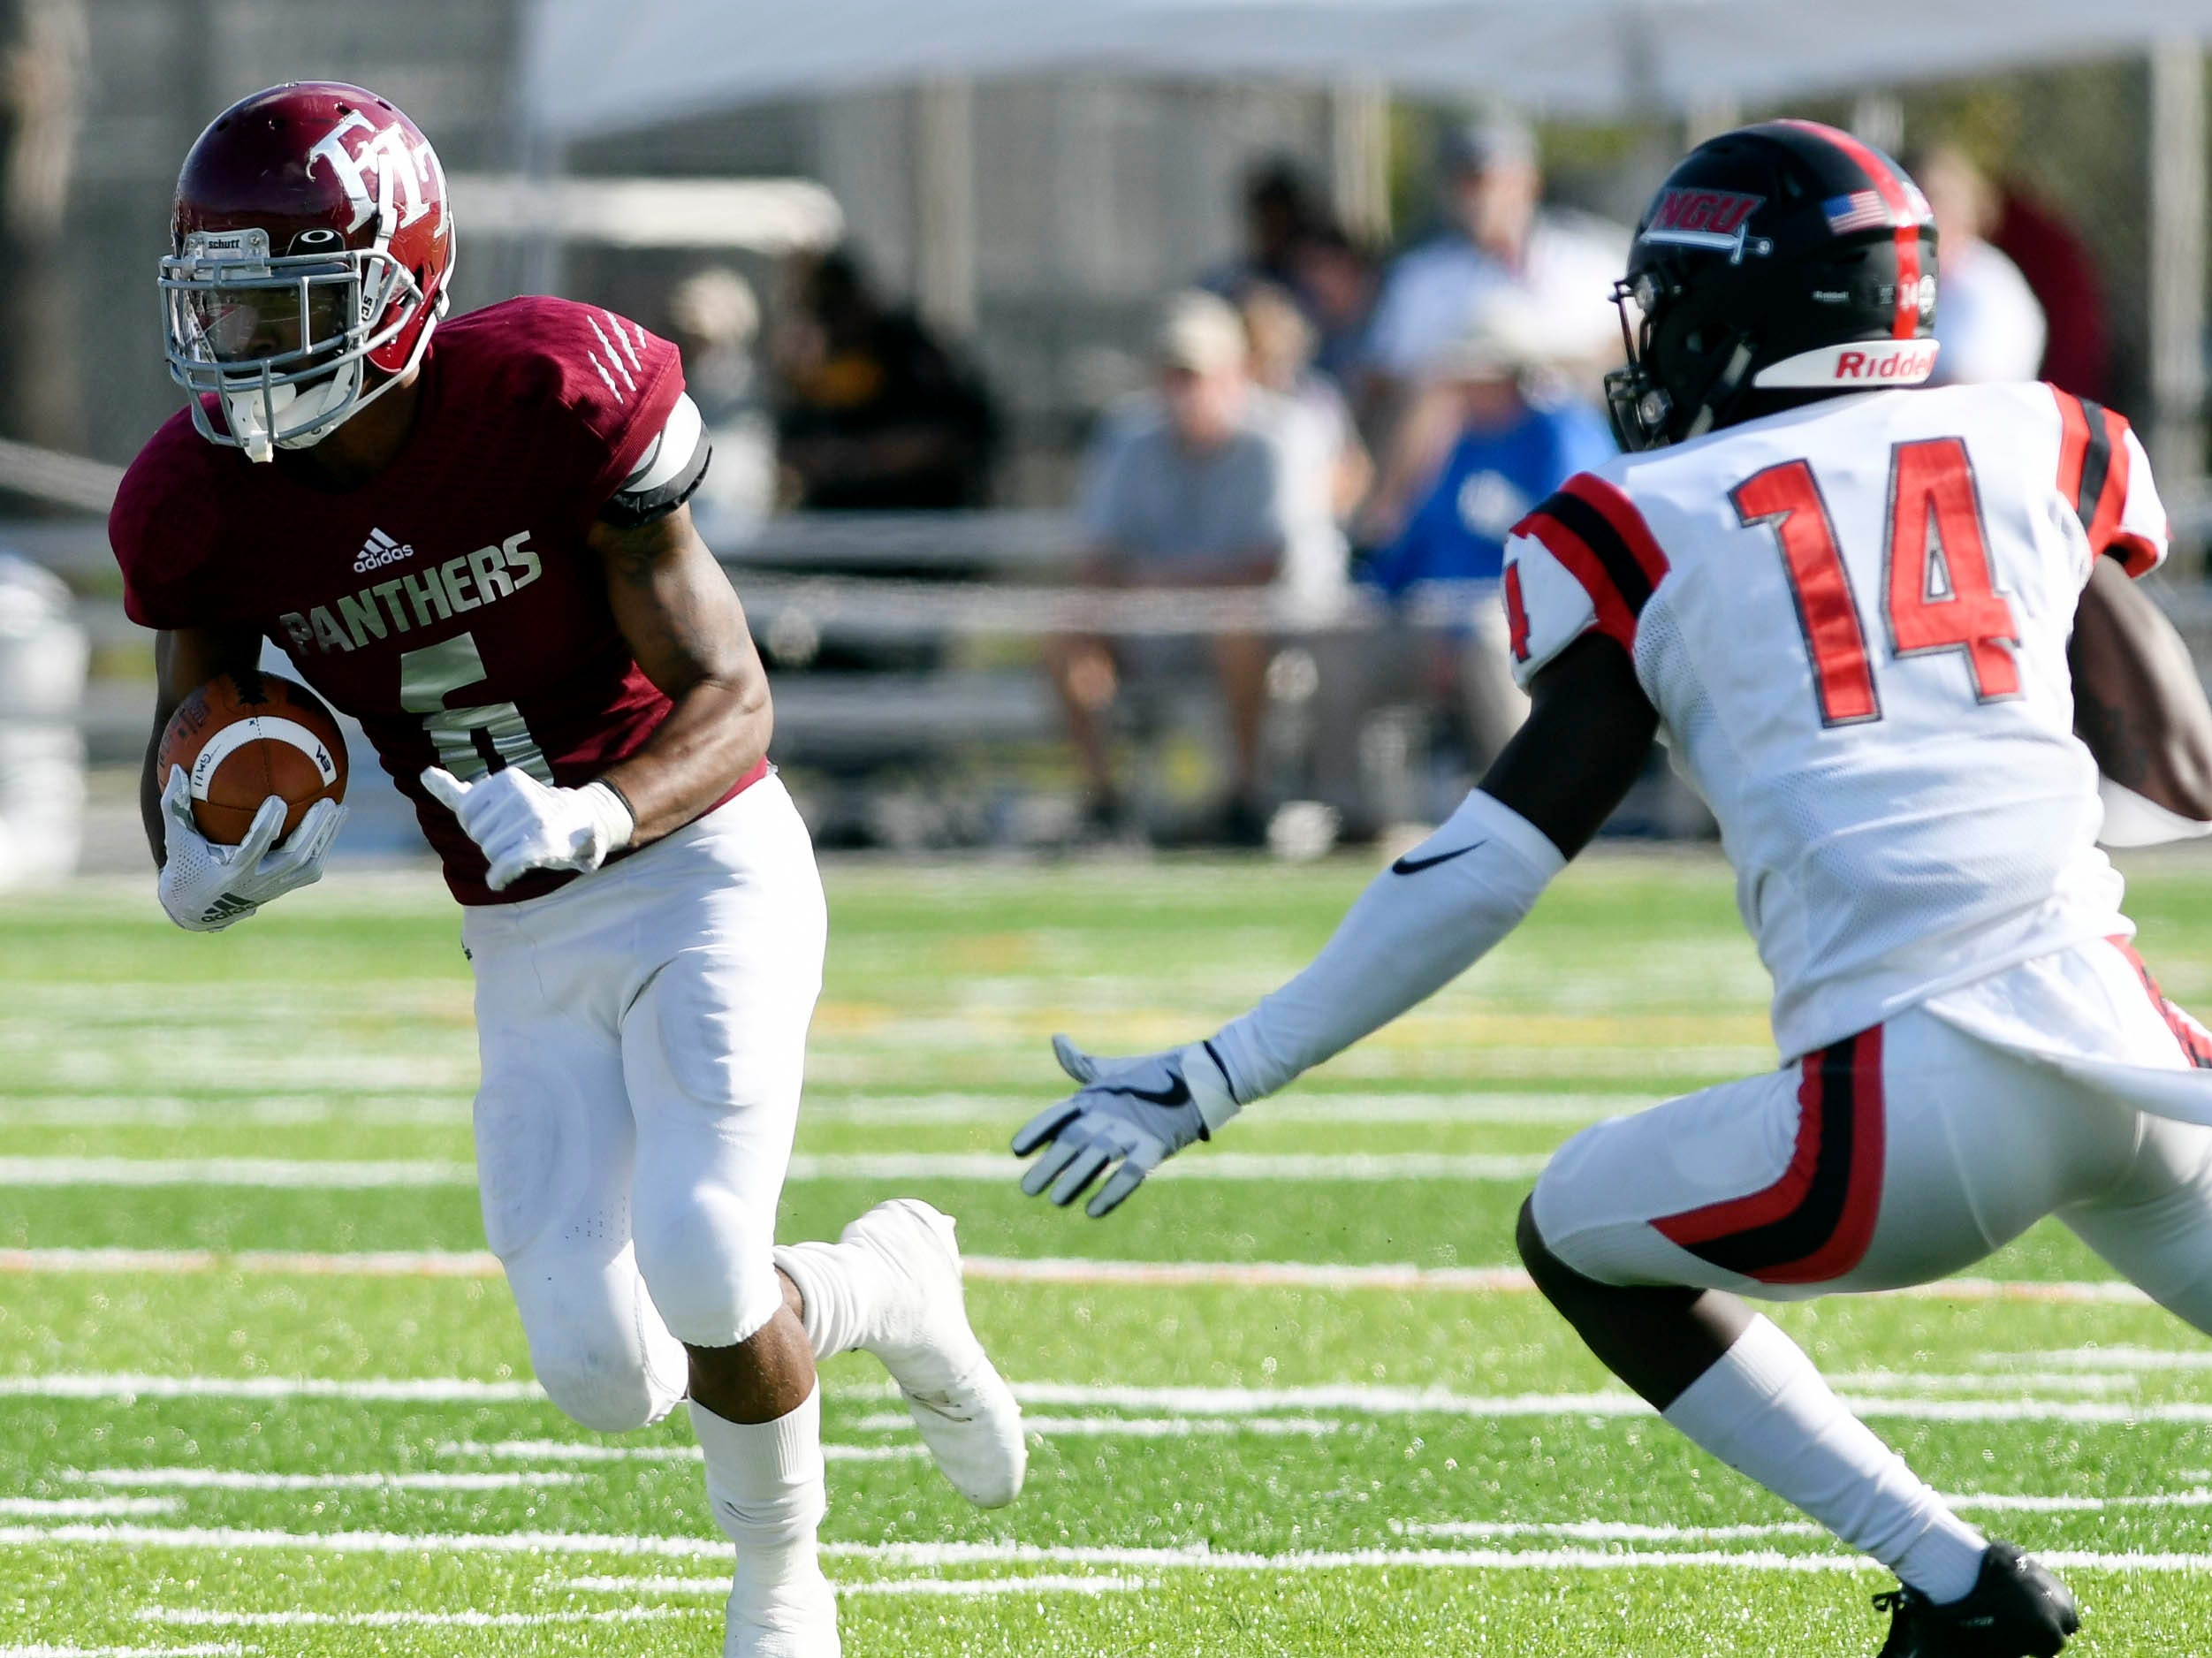 Antwuan Haynes of Florida Tech tries to get past North Greenville defender Johnny Worthy (14) during Saturday's game.